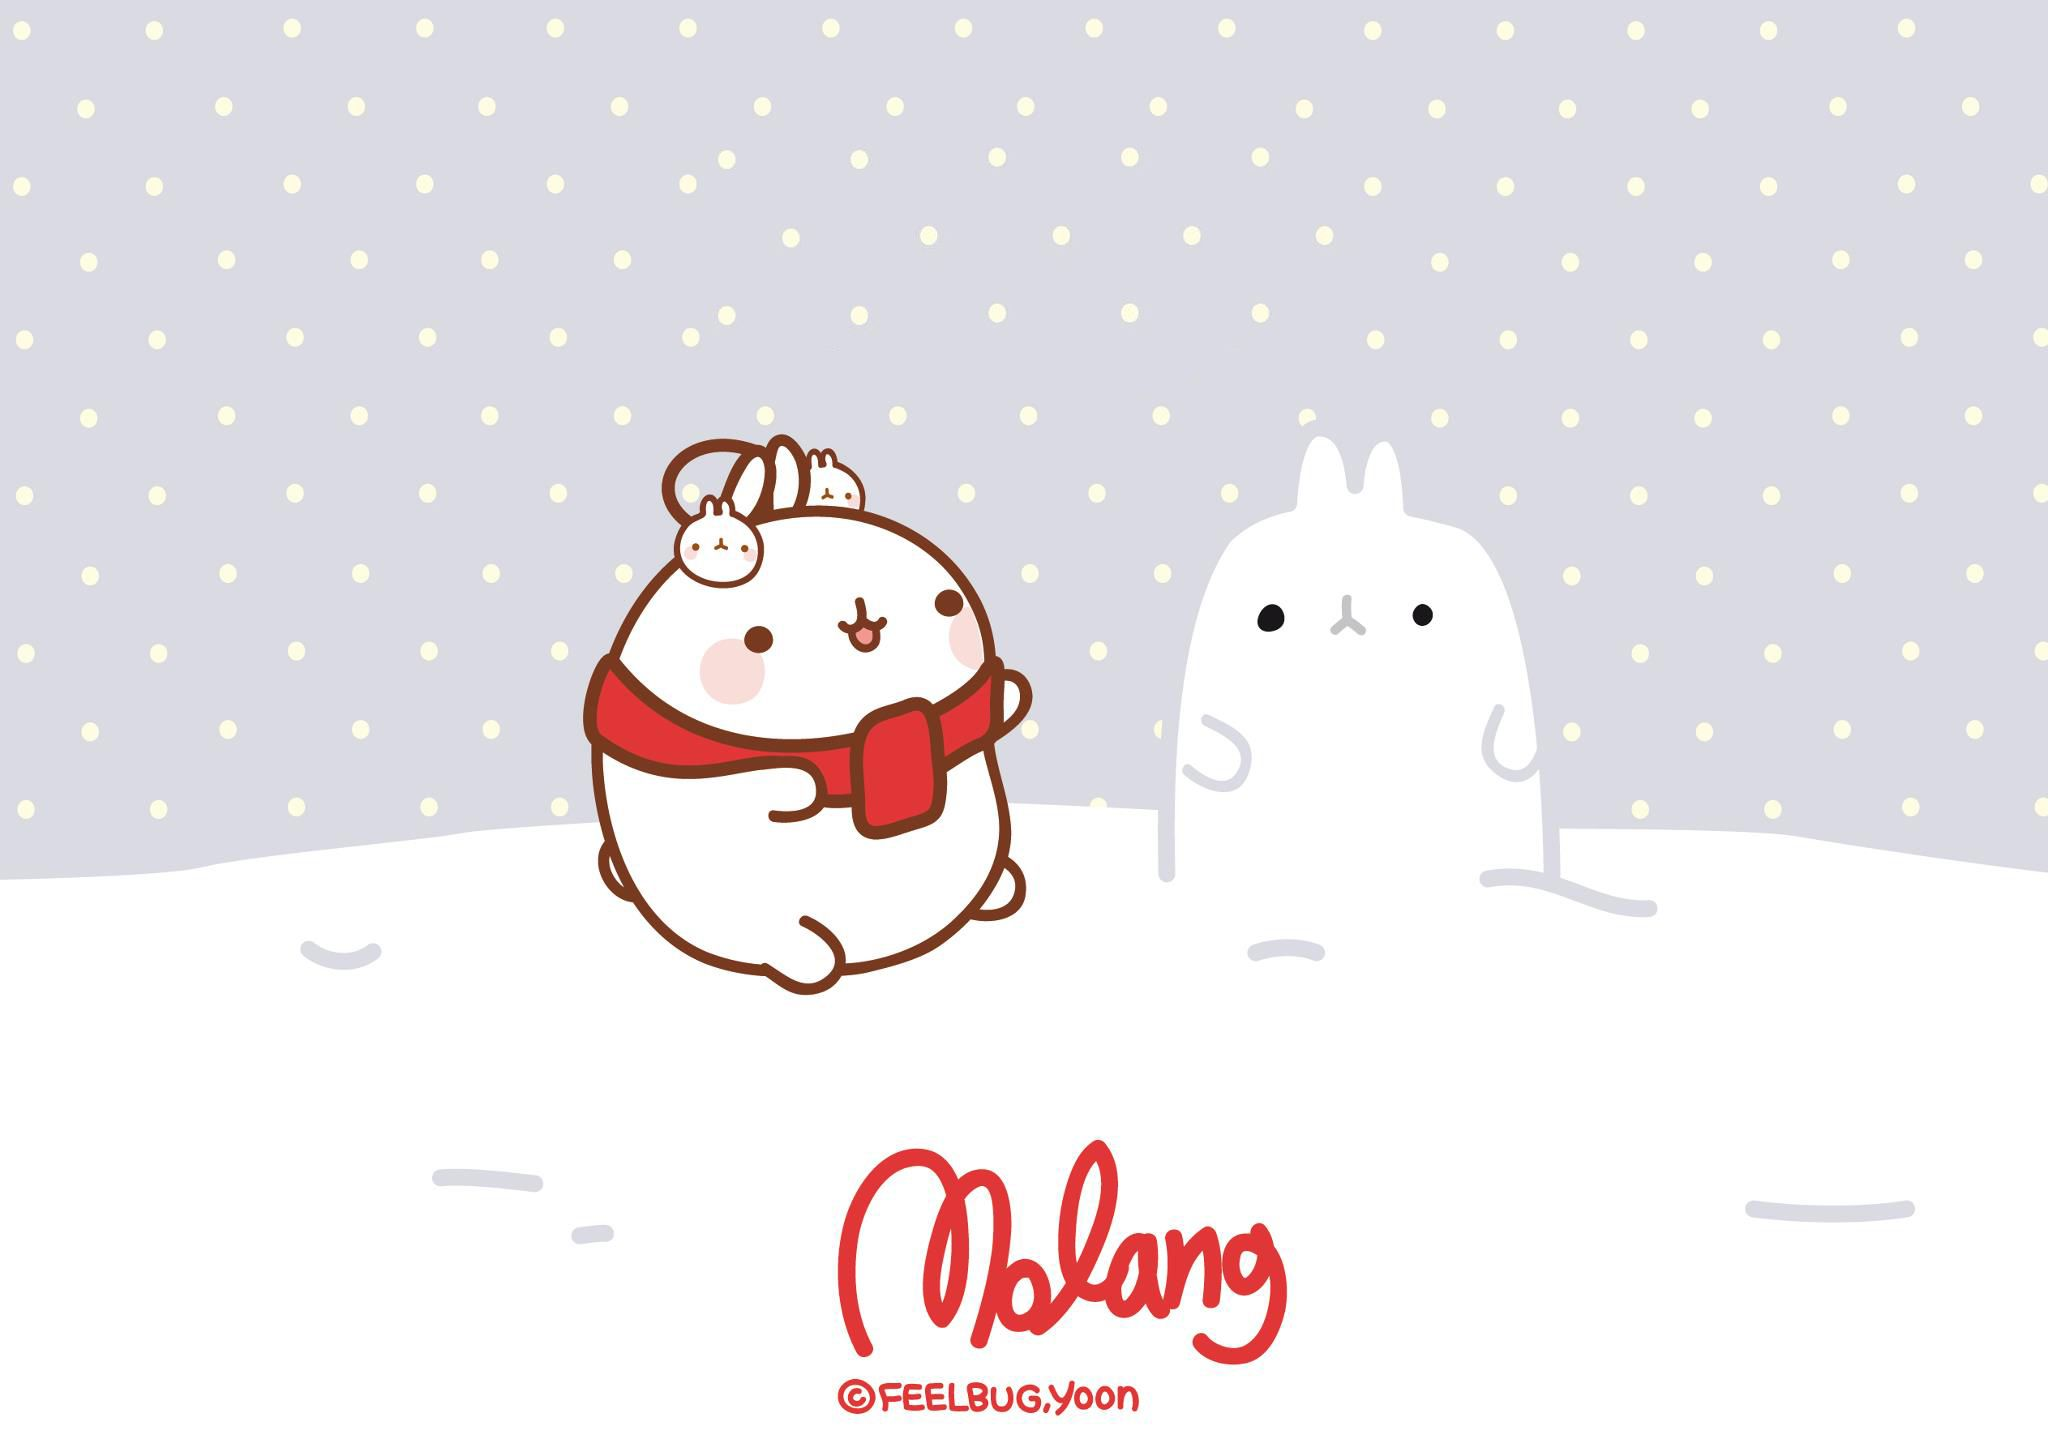 Wallpaper Navidad Molang By Leyfzalley On Deviantart Molang Wallpaper Molang Christmas Desktop Wallpaper